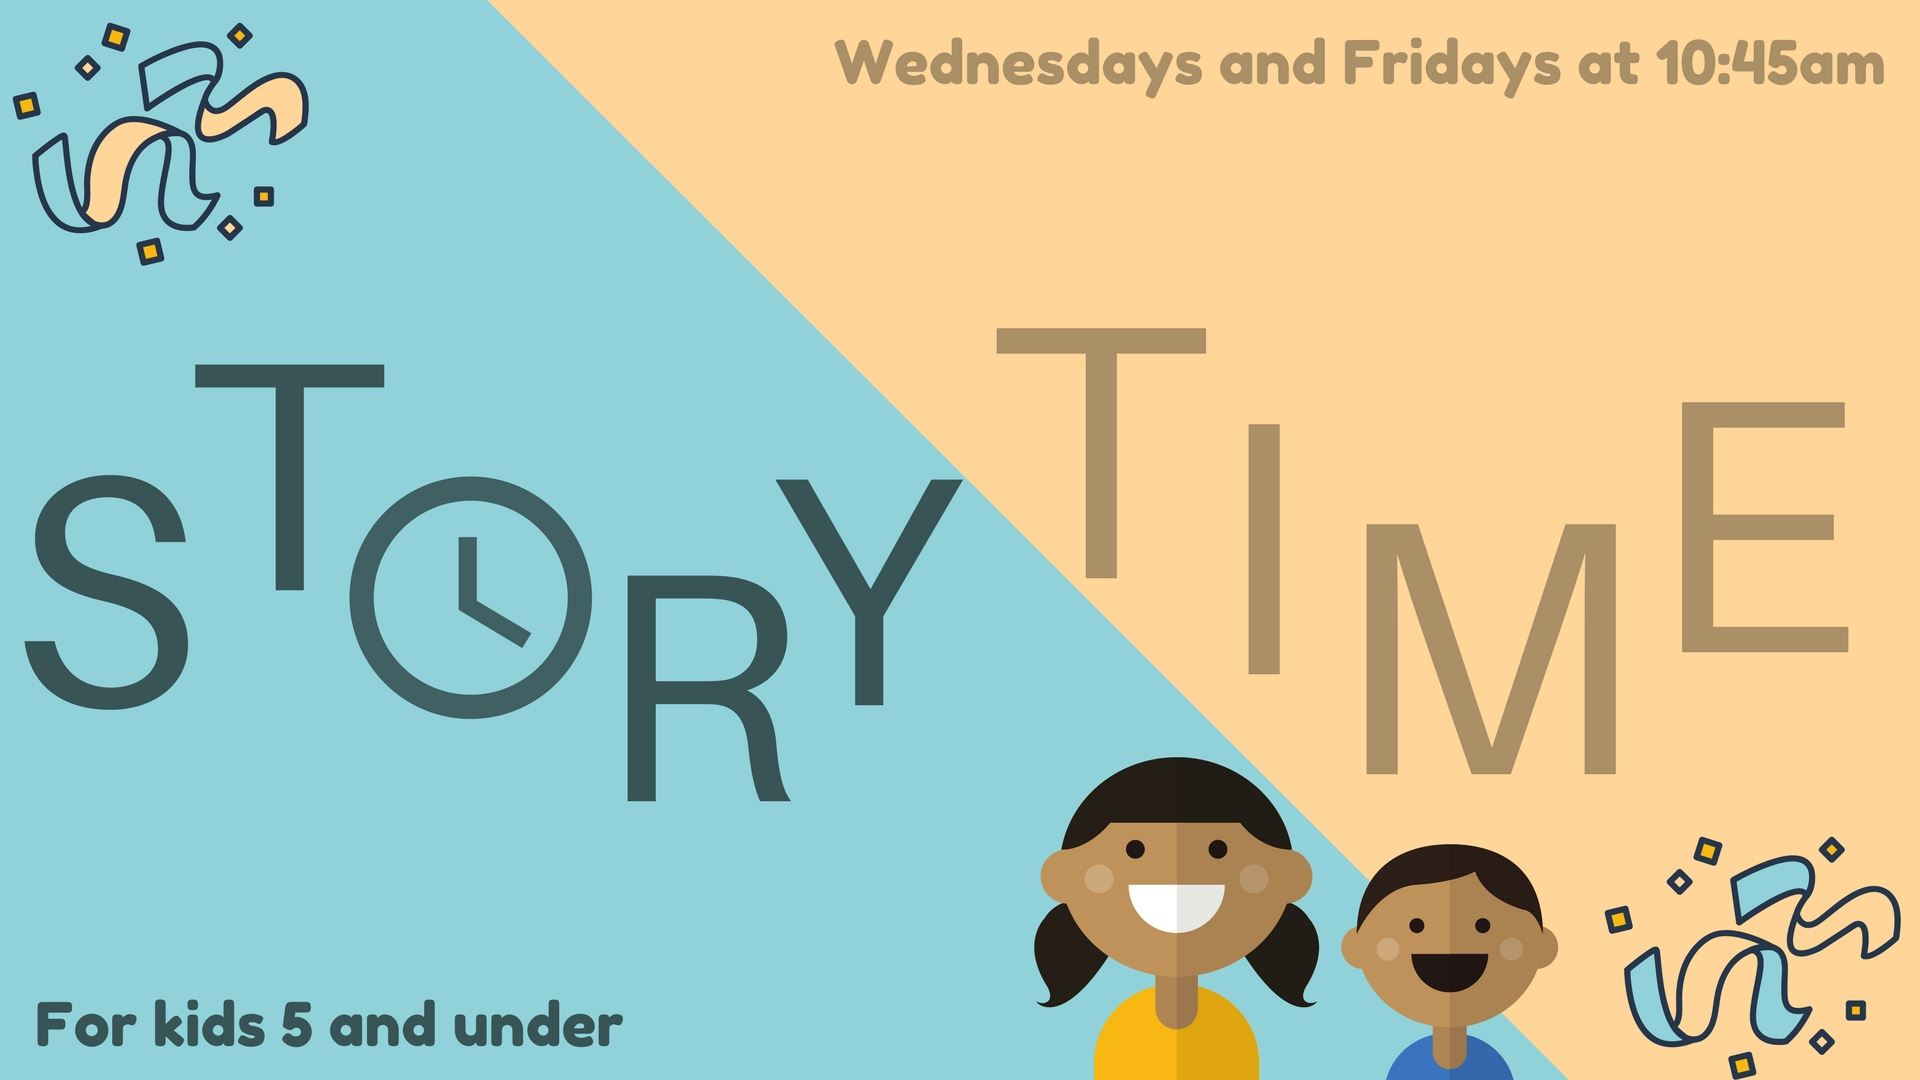 Come to Story Time – a fun early literacy program for kids 5 and under. Join Huntsville Public Library for interactive stories, songs, rhymes, and crafts. The early literacy practices featured each w